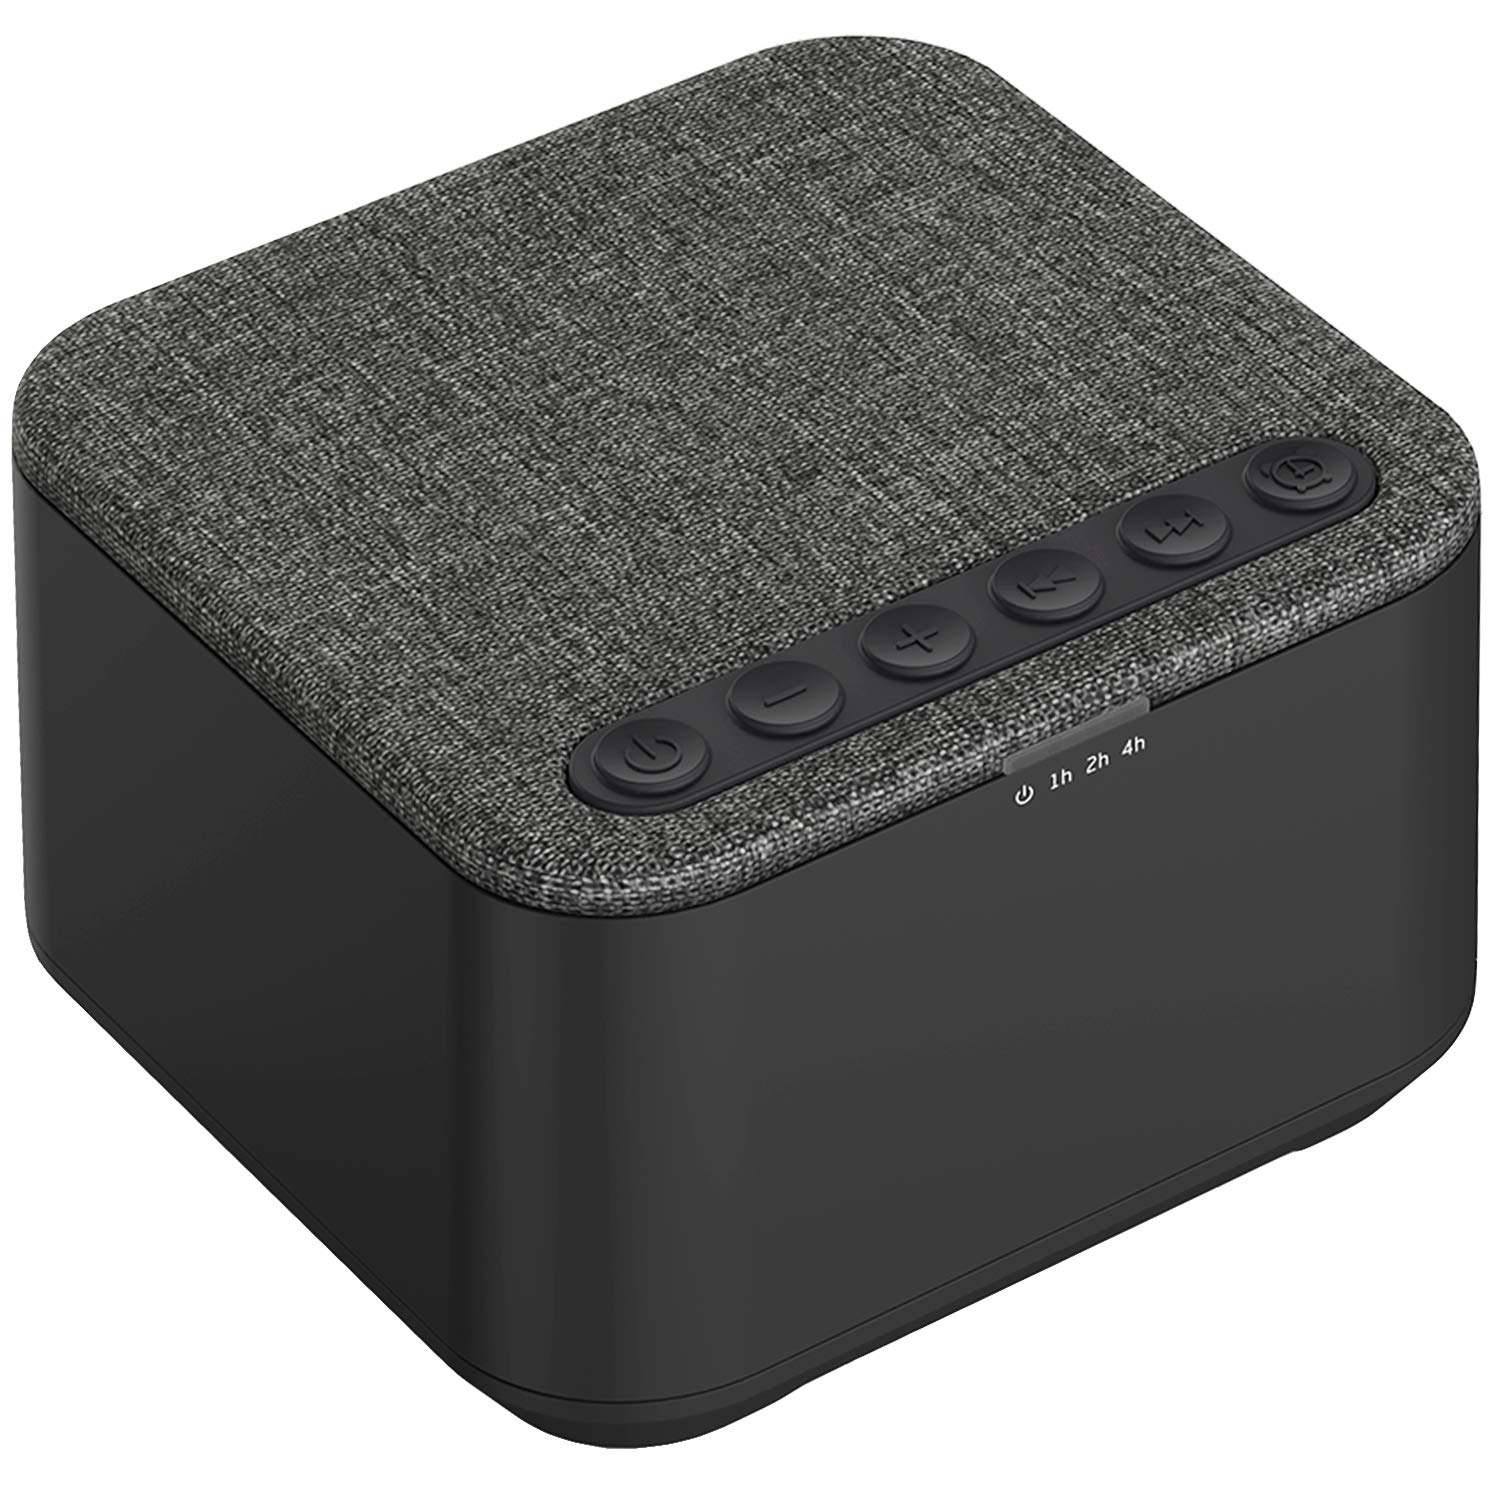 White Noise Machine, X-Sense Sleep Sound Machine with 40 Non-Looping Soothing Sounds and Memory Function, High Quality Speaker with 30 Levels of Volume and 7 Timer Settings for Home, Office and Travel